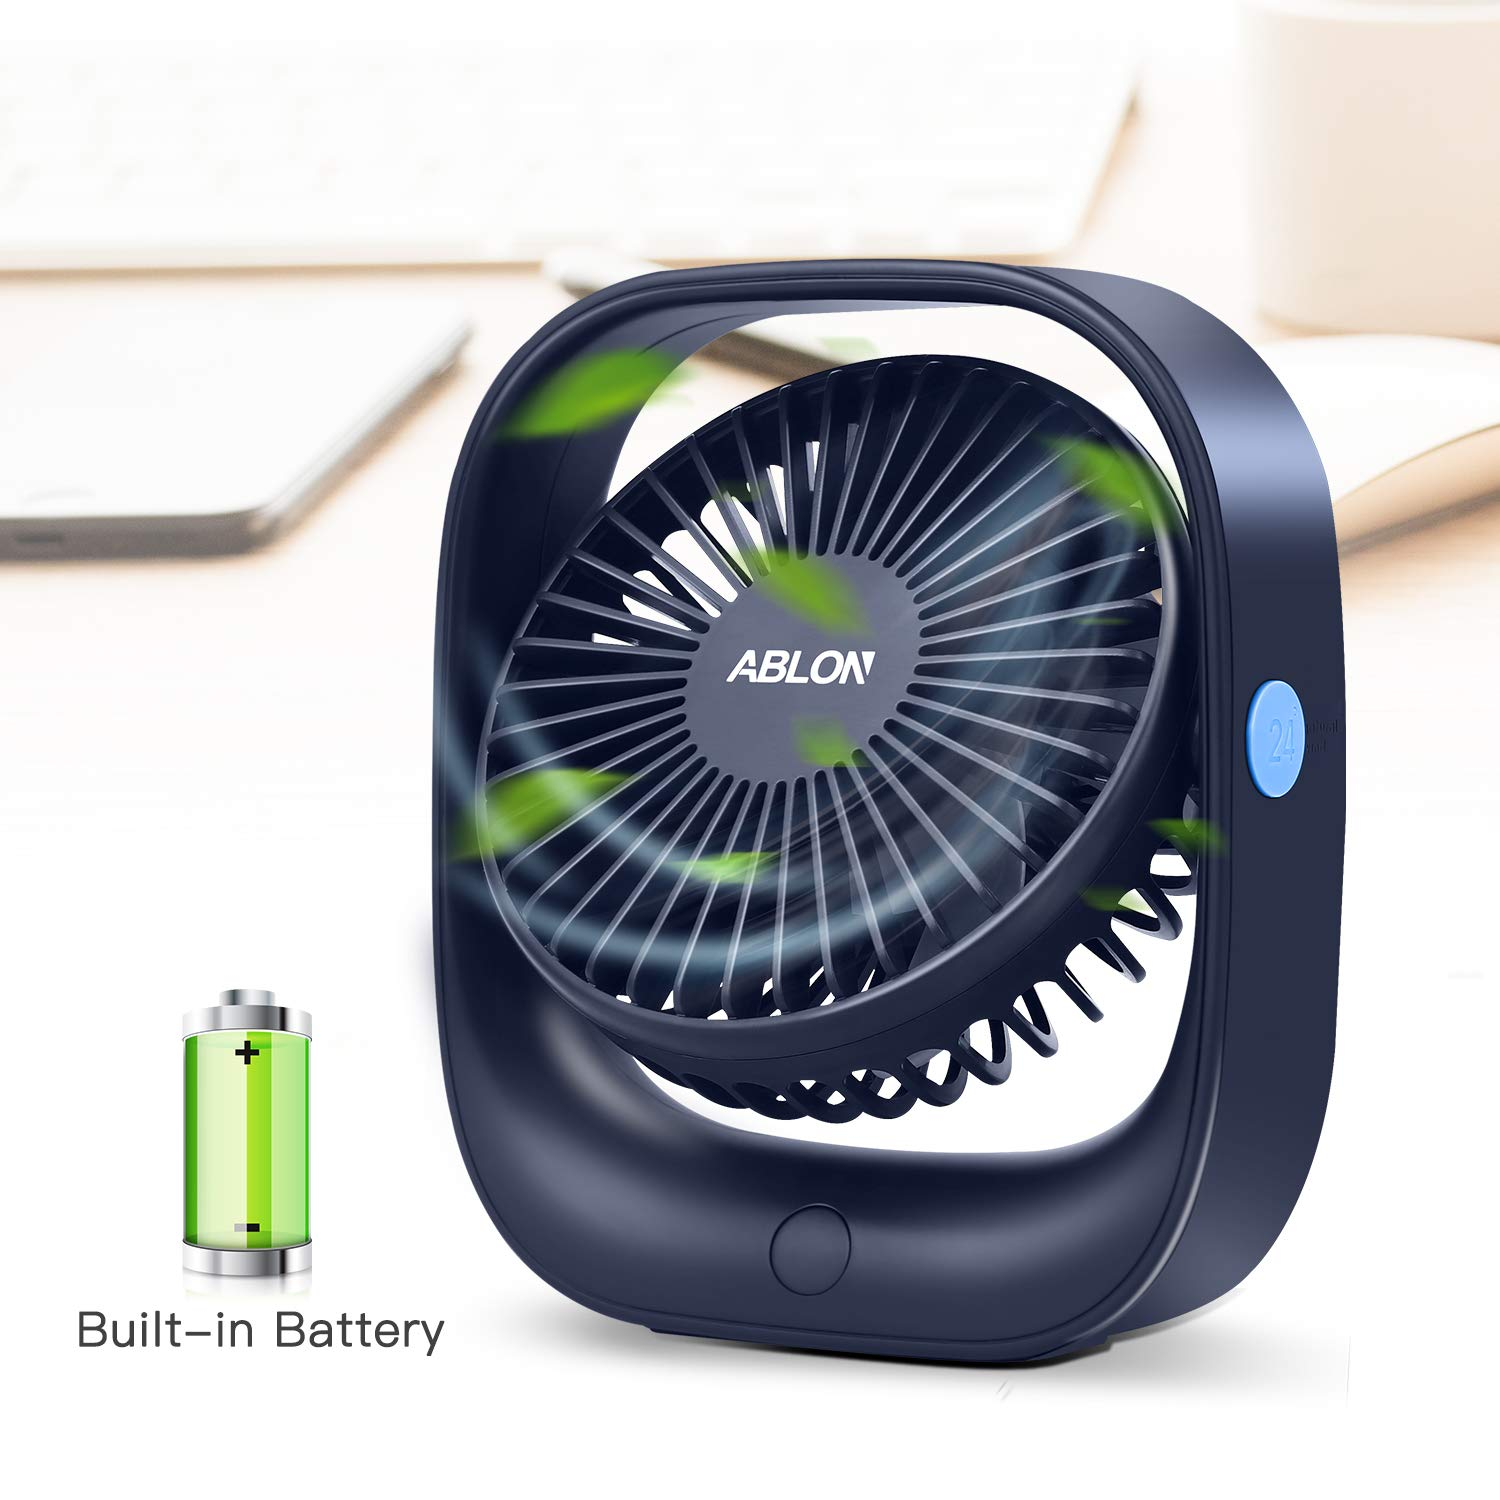 Ablon Portable Desk Fan with 2000mAH Rechargeable Battery, Battery Operated or USB Powered Personal Handheld Fan, 3 Speed Settings for Travel, Office, Camping